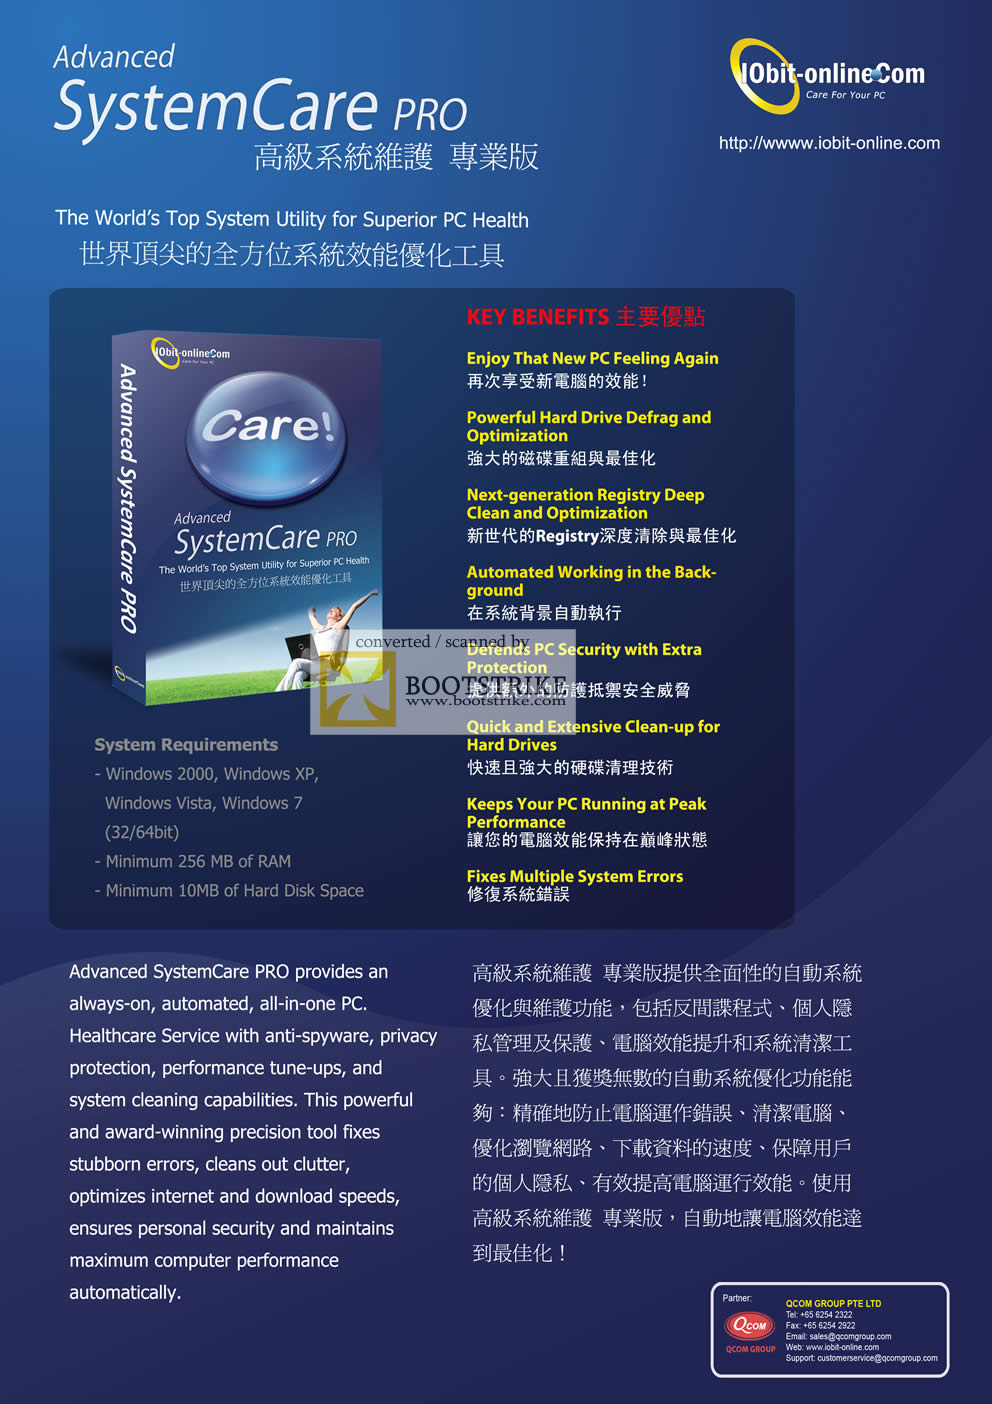 Comex 2009 price list image brochure of Advanced SystemCare PRO IObit-online Qcom Group